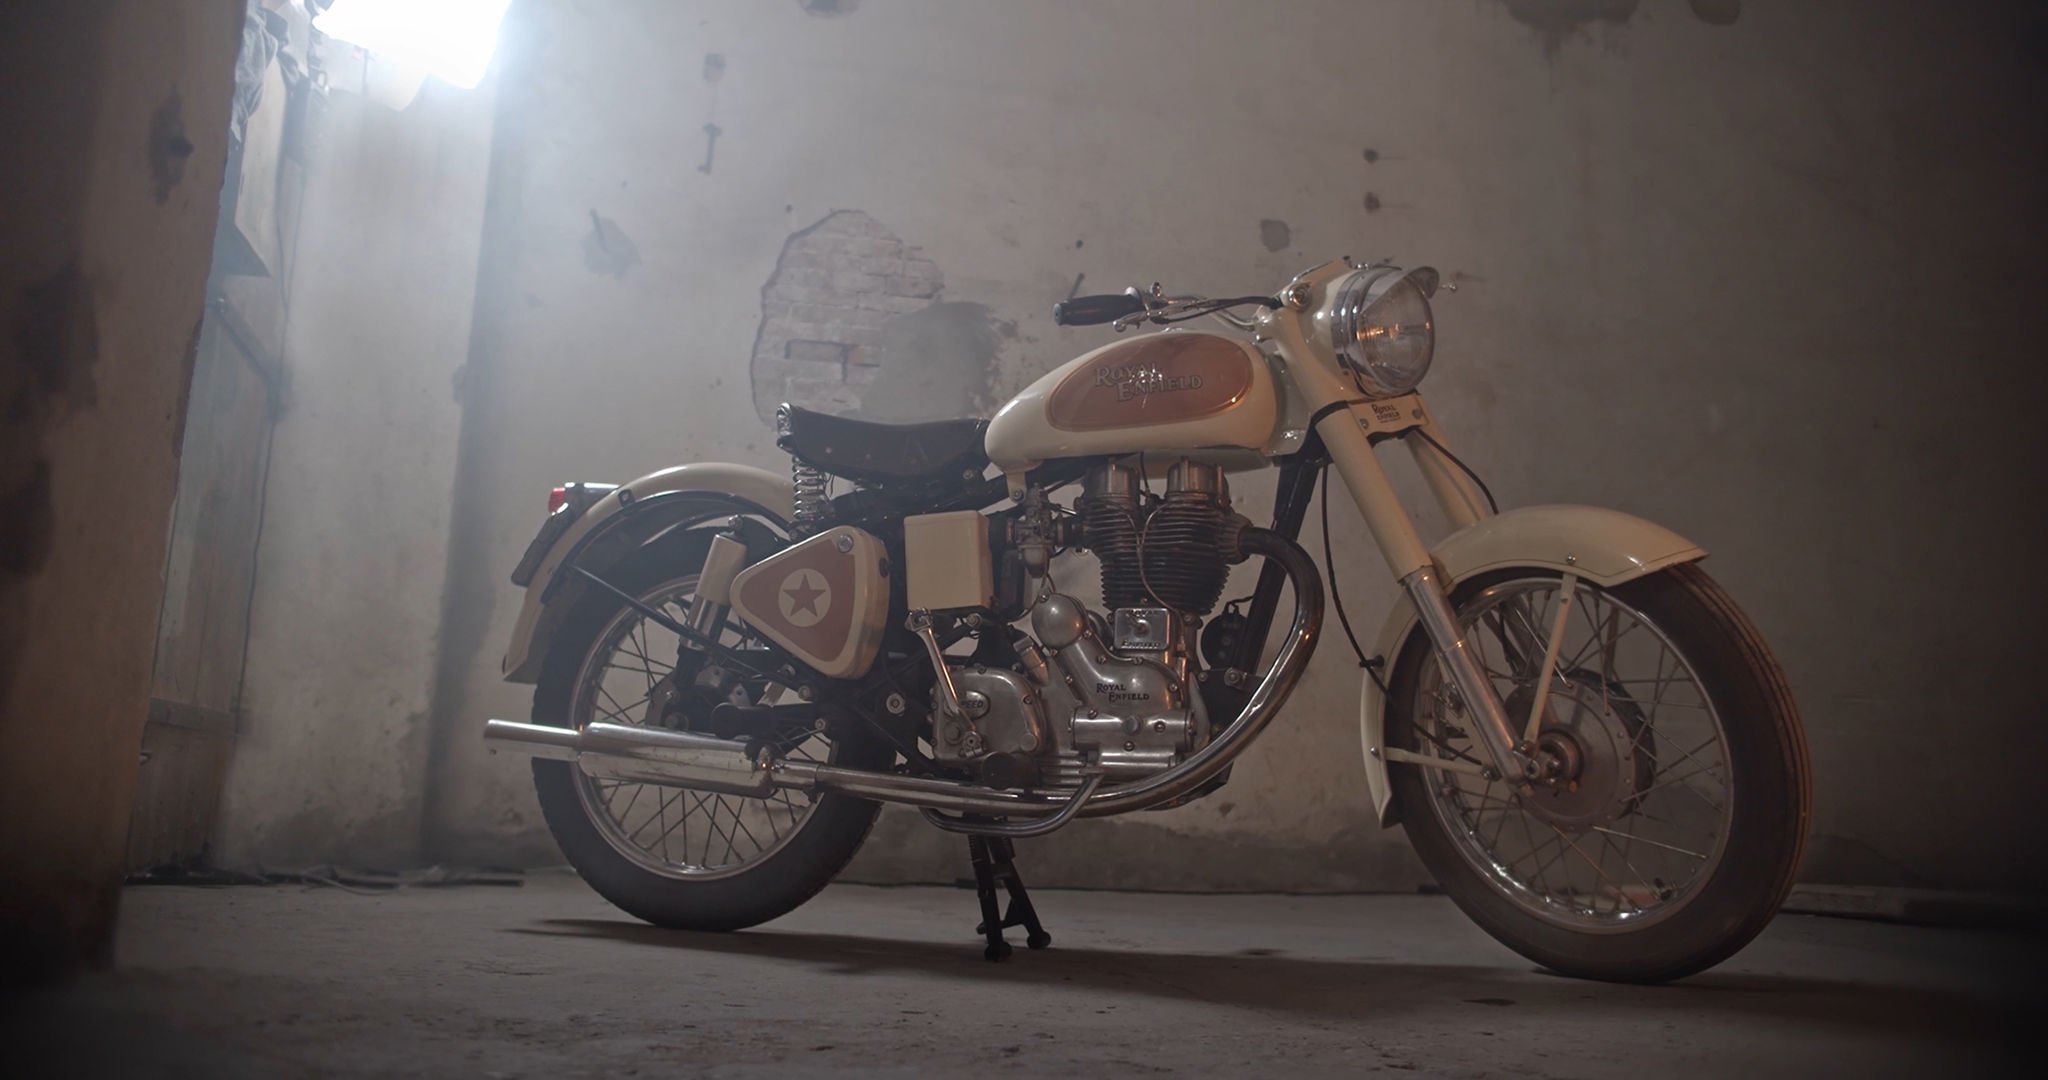 Royal_enfield_1.jpg